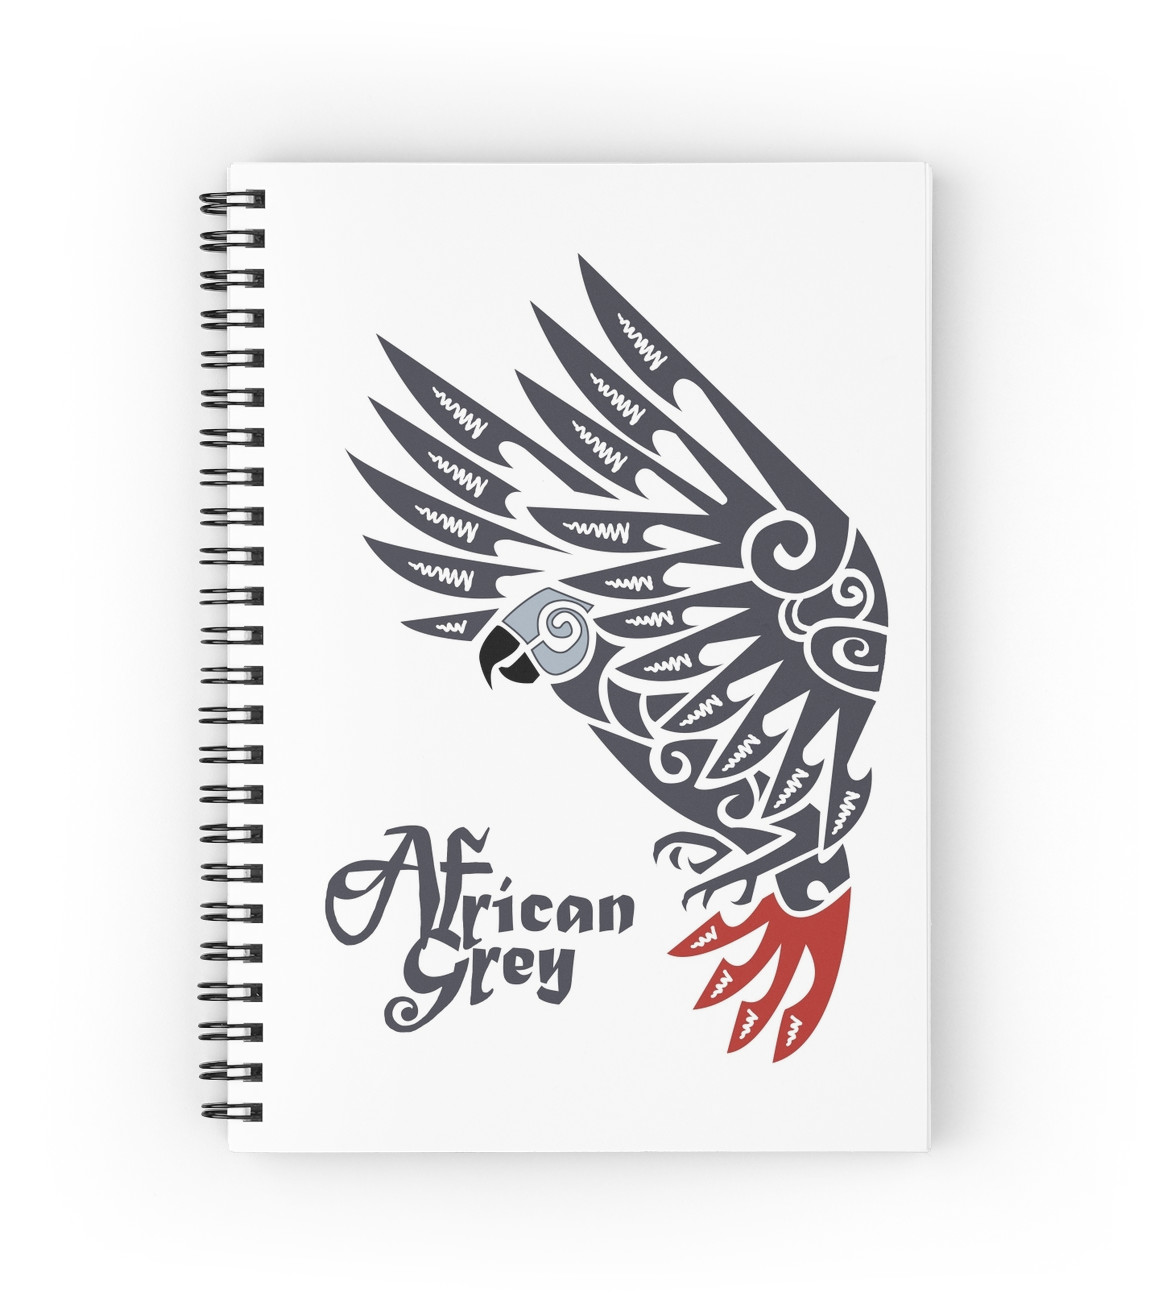 1171x1313 African Grey Parrot Tribal Tattoo Spiral Notebooks By